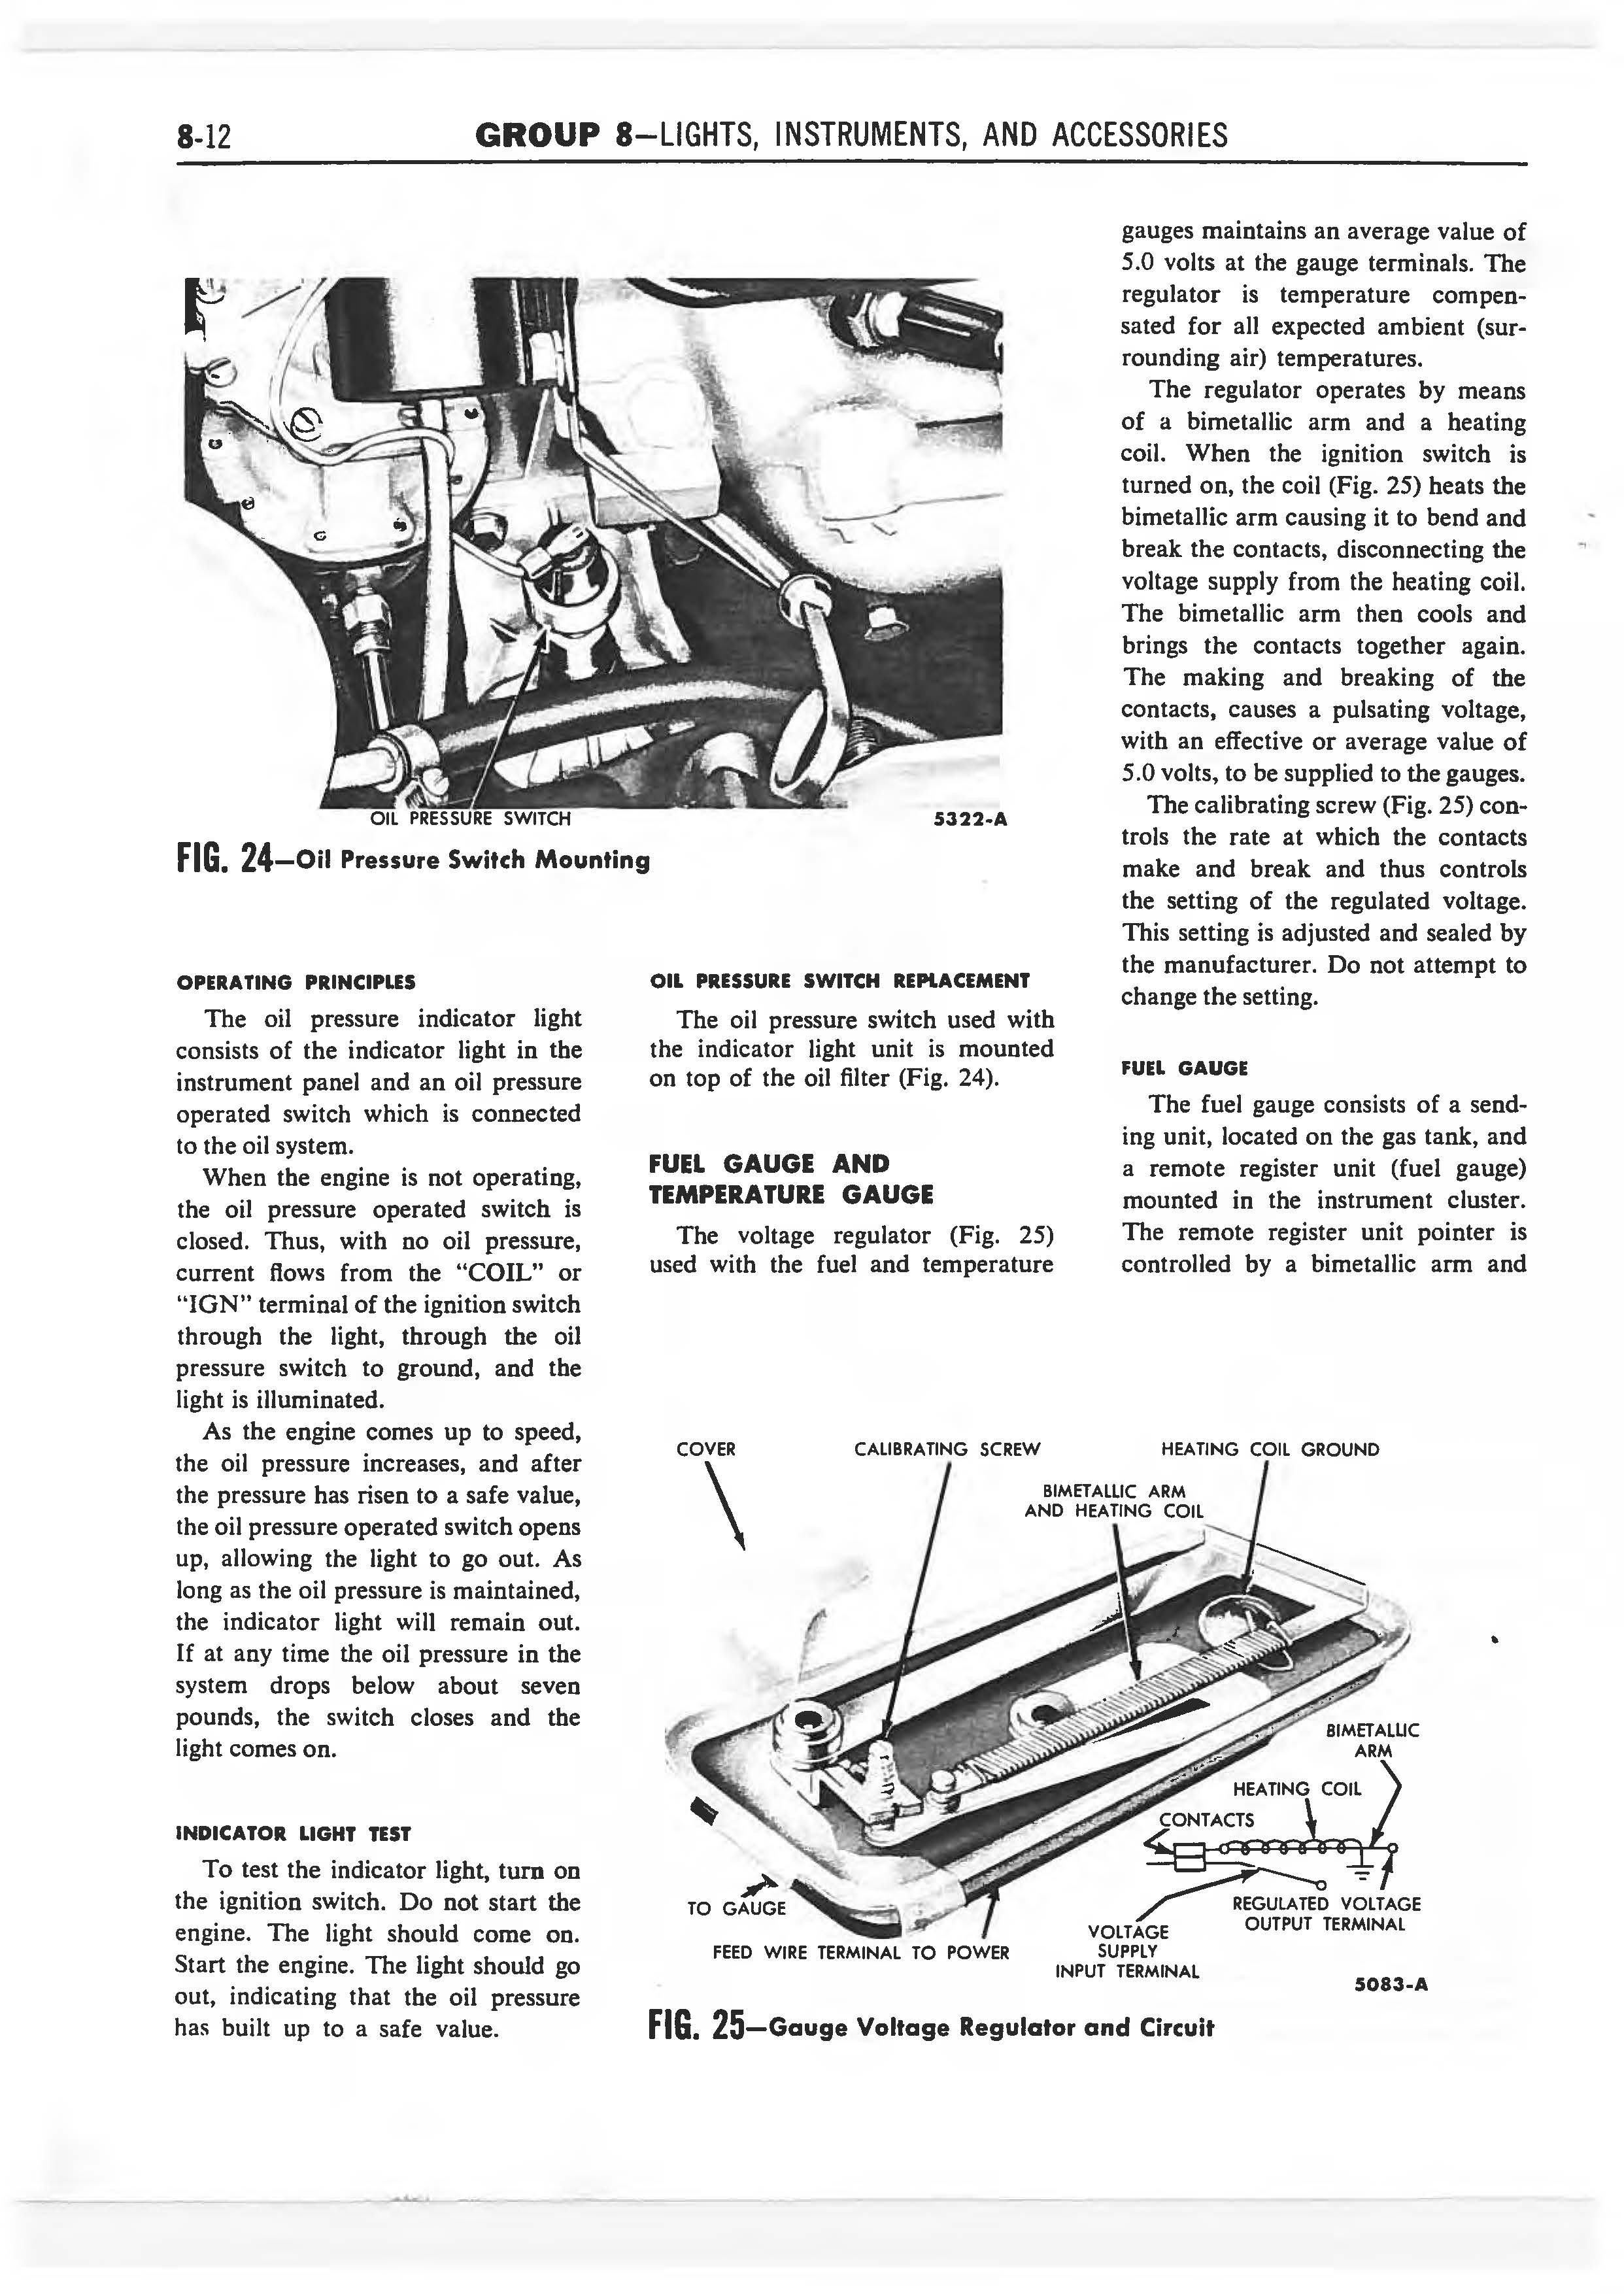 1958 Ford Thunderbird Shop Manual page 277 of 360